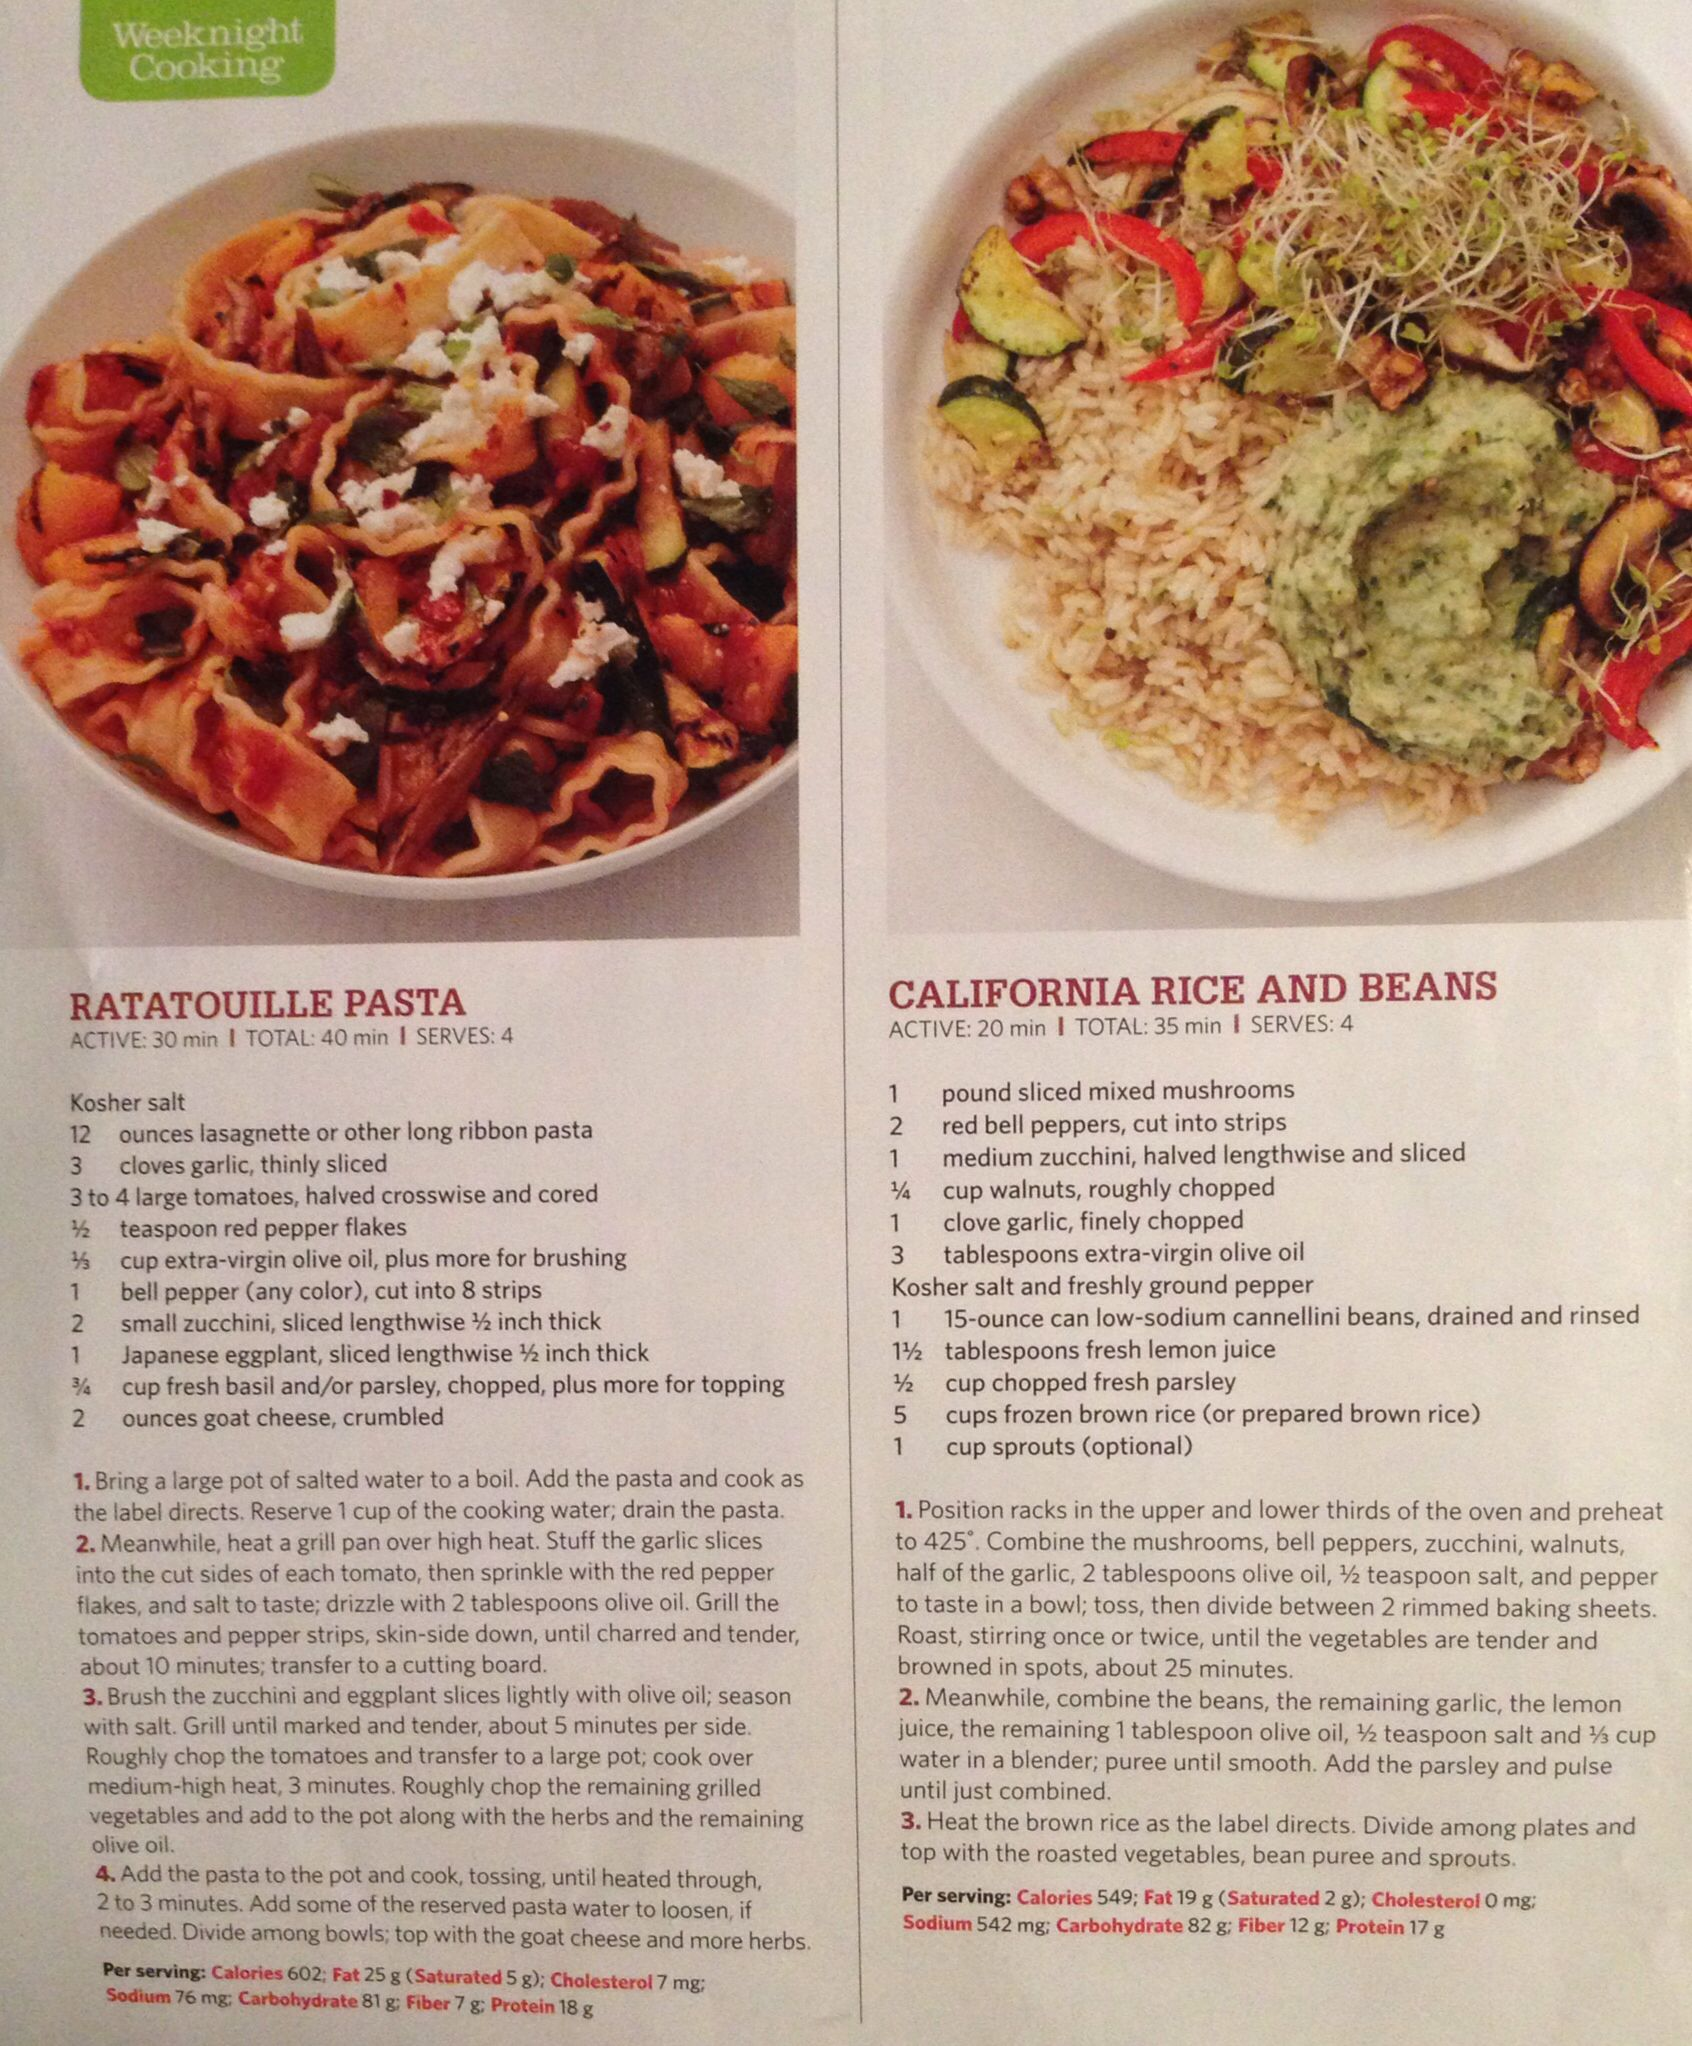 California Rice and Beans | Yummy stuff | Pinterest